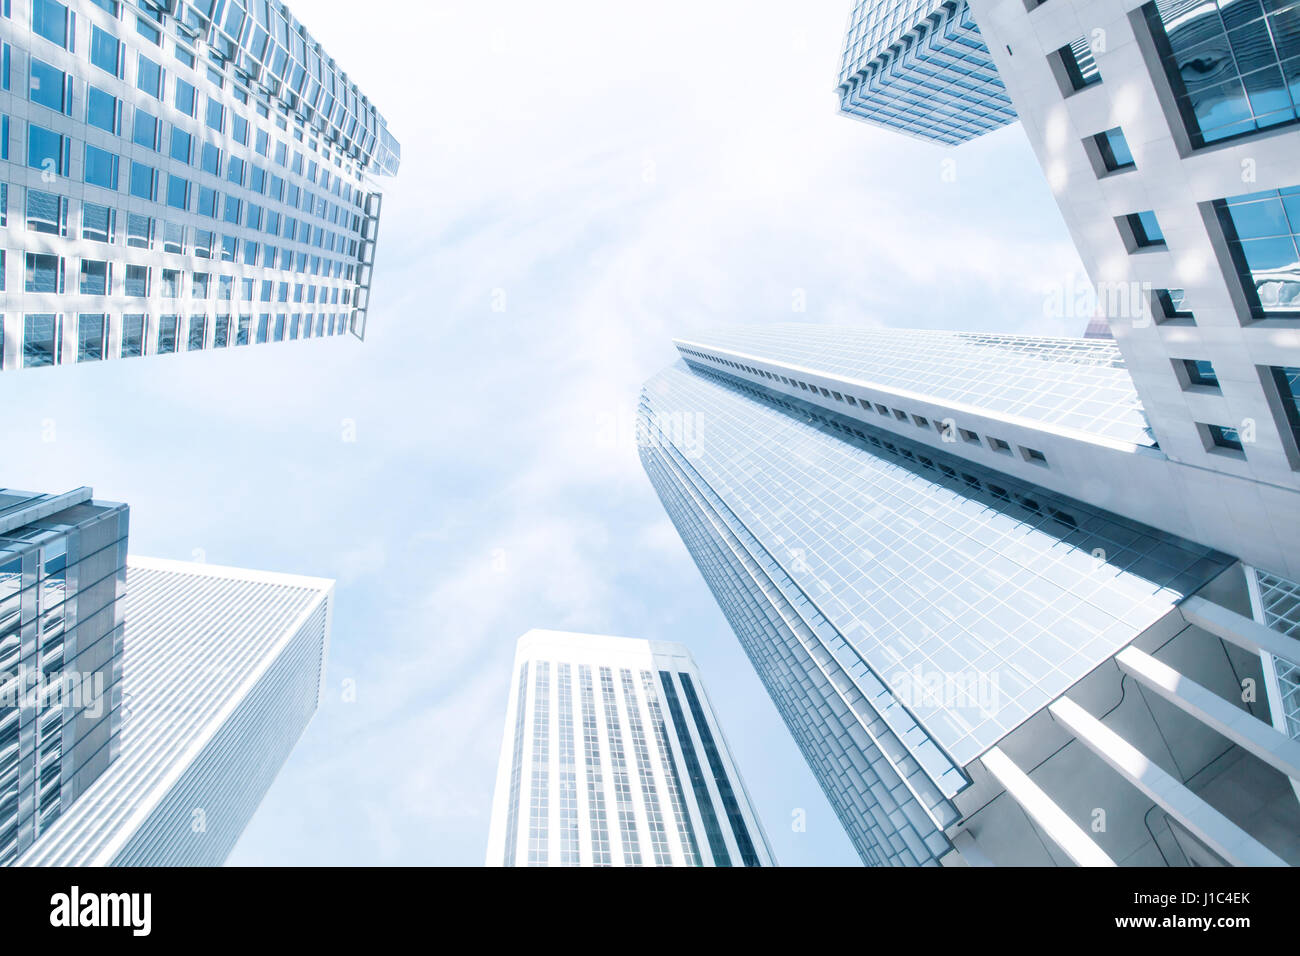 city - Stock Image